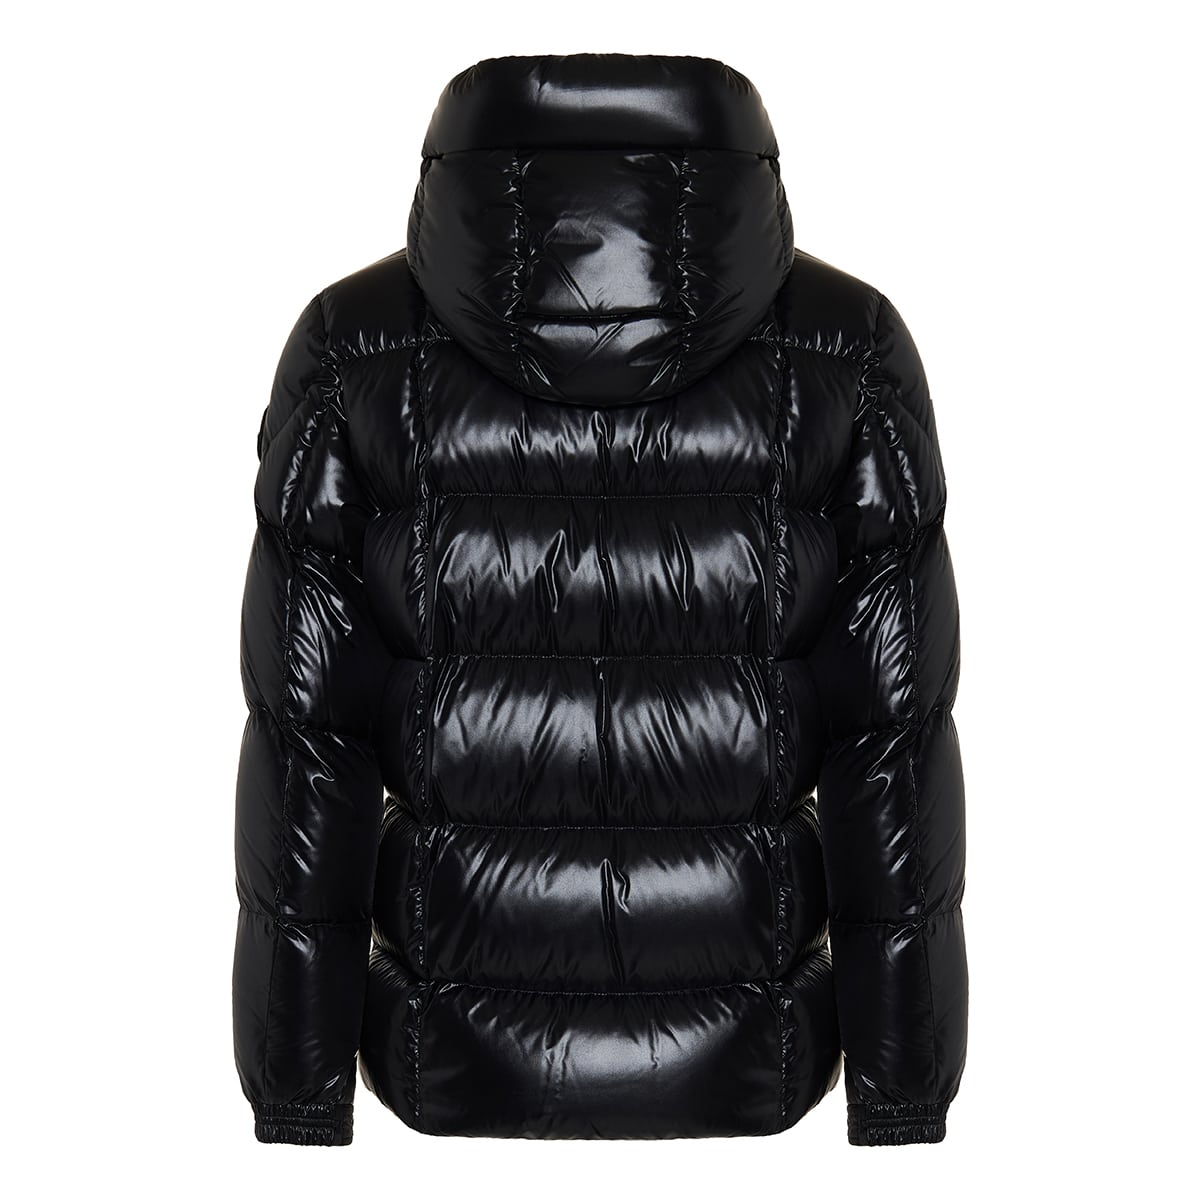 Dougnac quilted puffer jacket